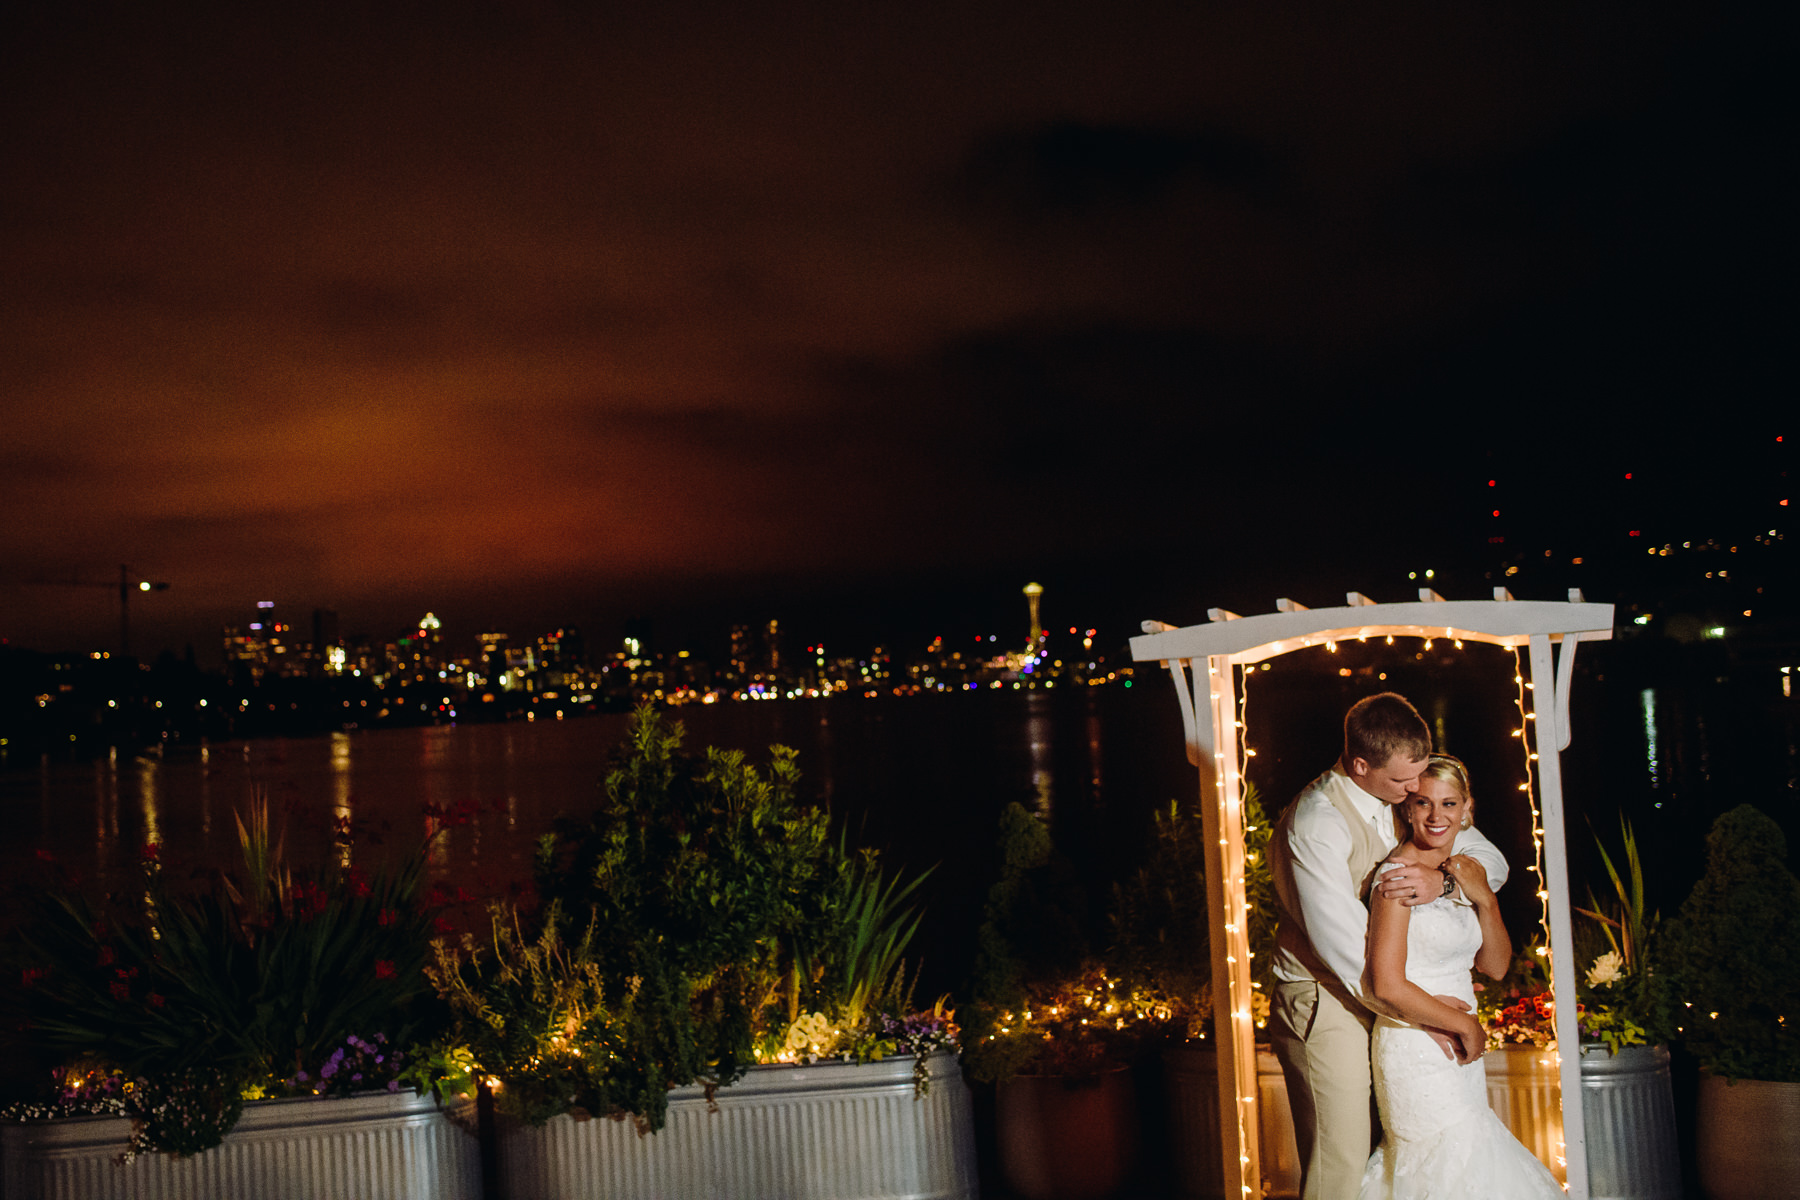 mv skansonia night wedding portrait